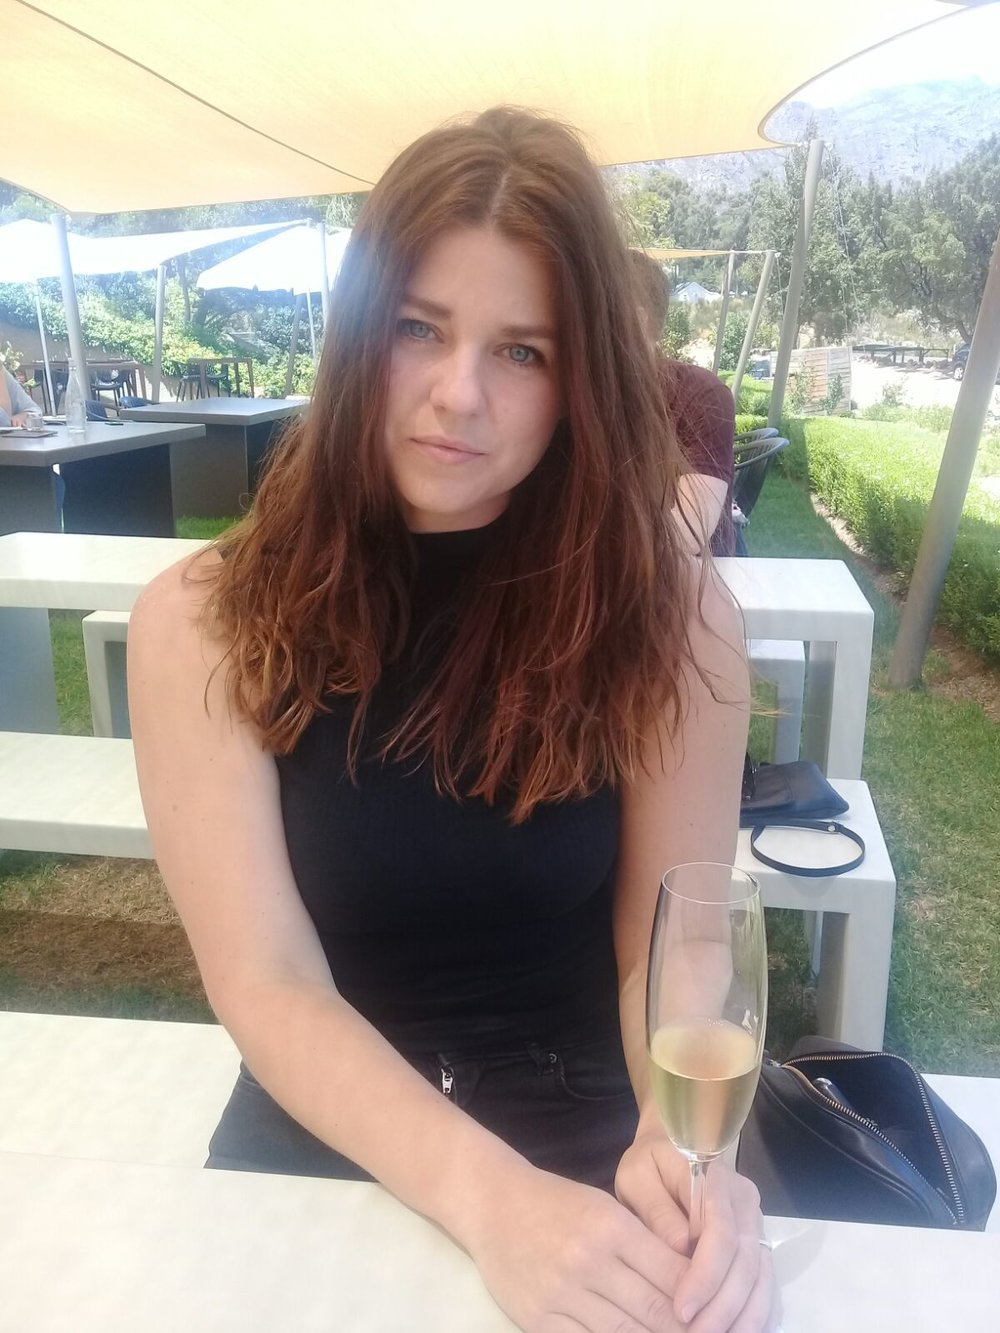 Me in my natural habitat (wine tasting)